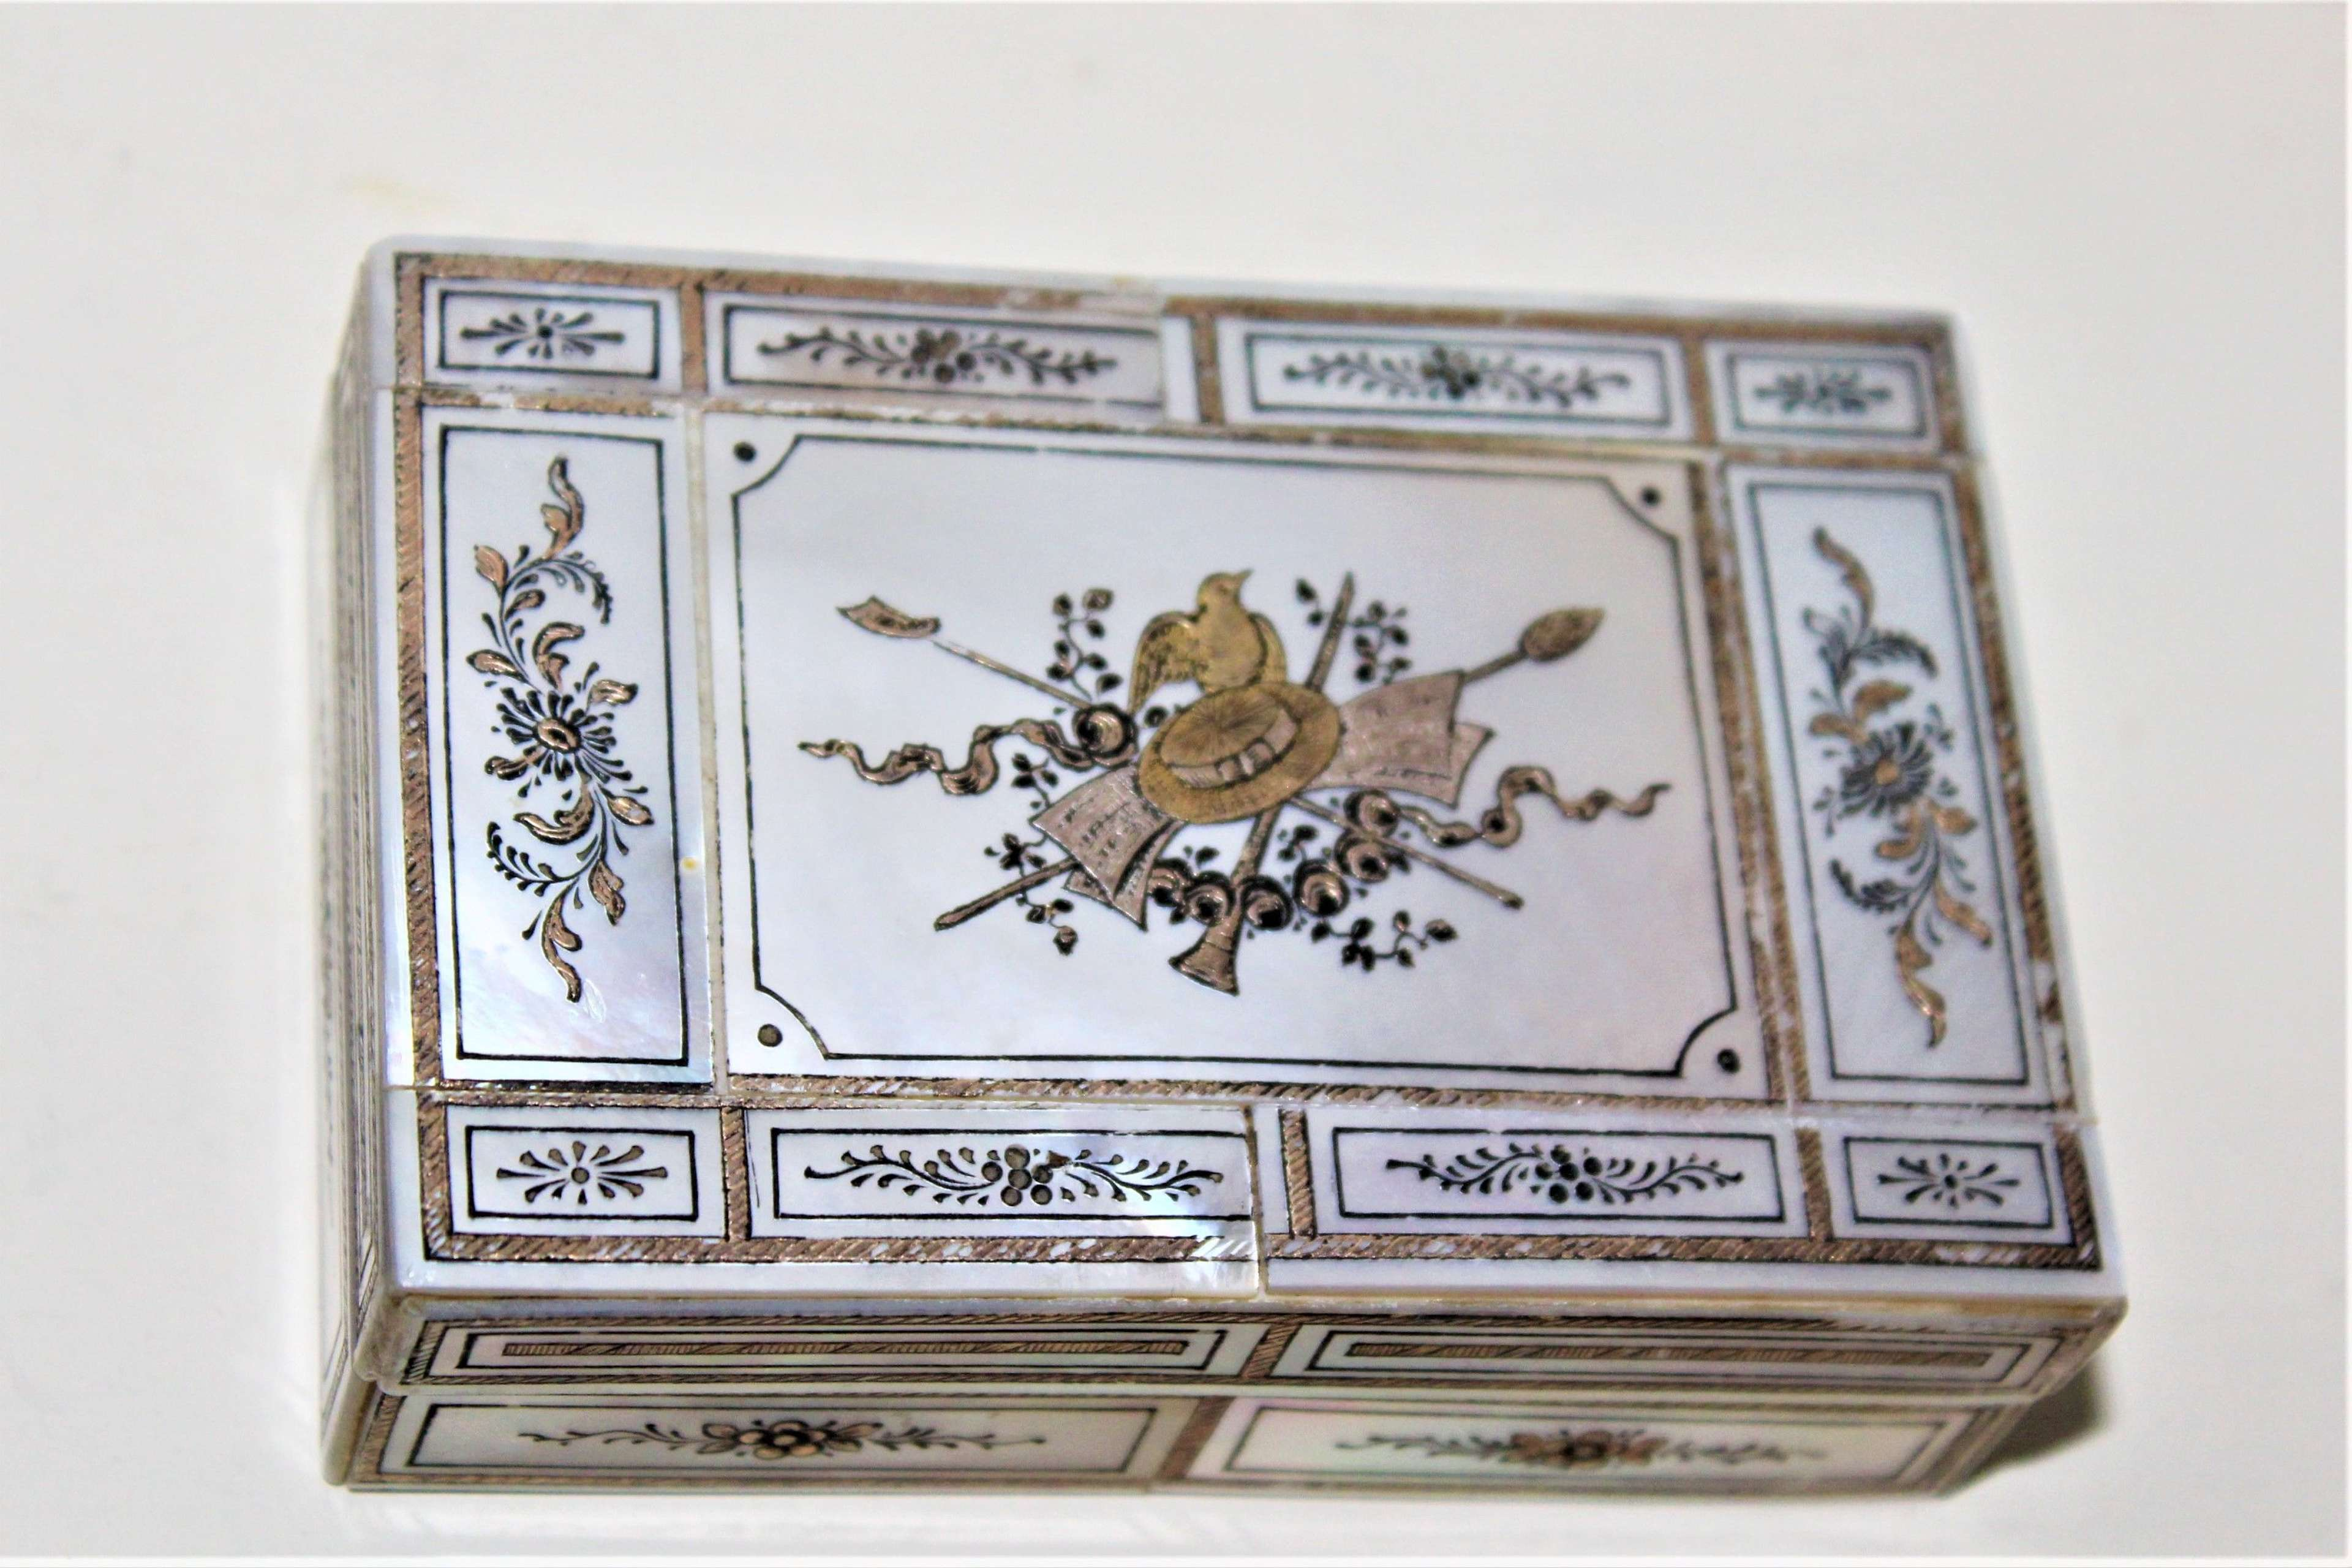 A fine quality mother of pearl small box with an engraved cartouche